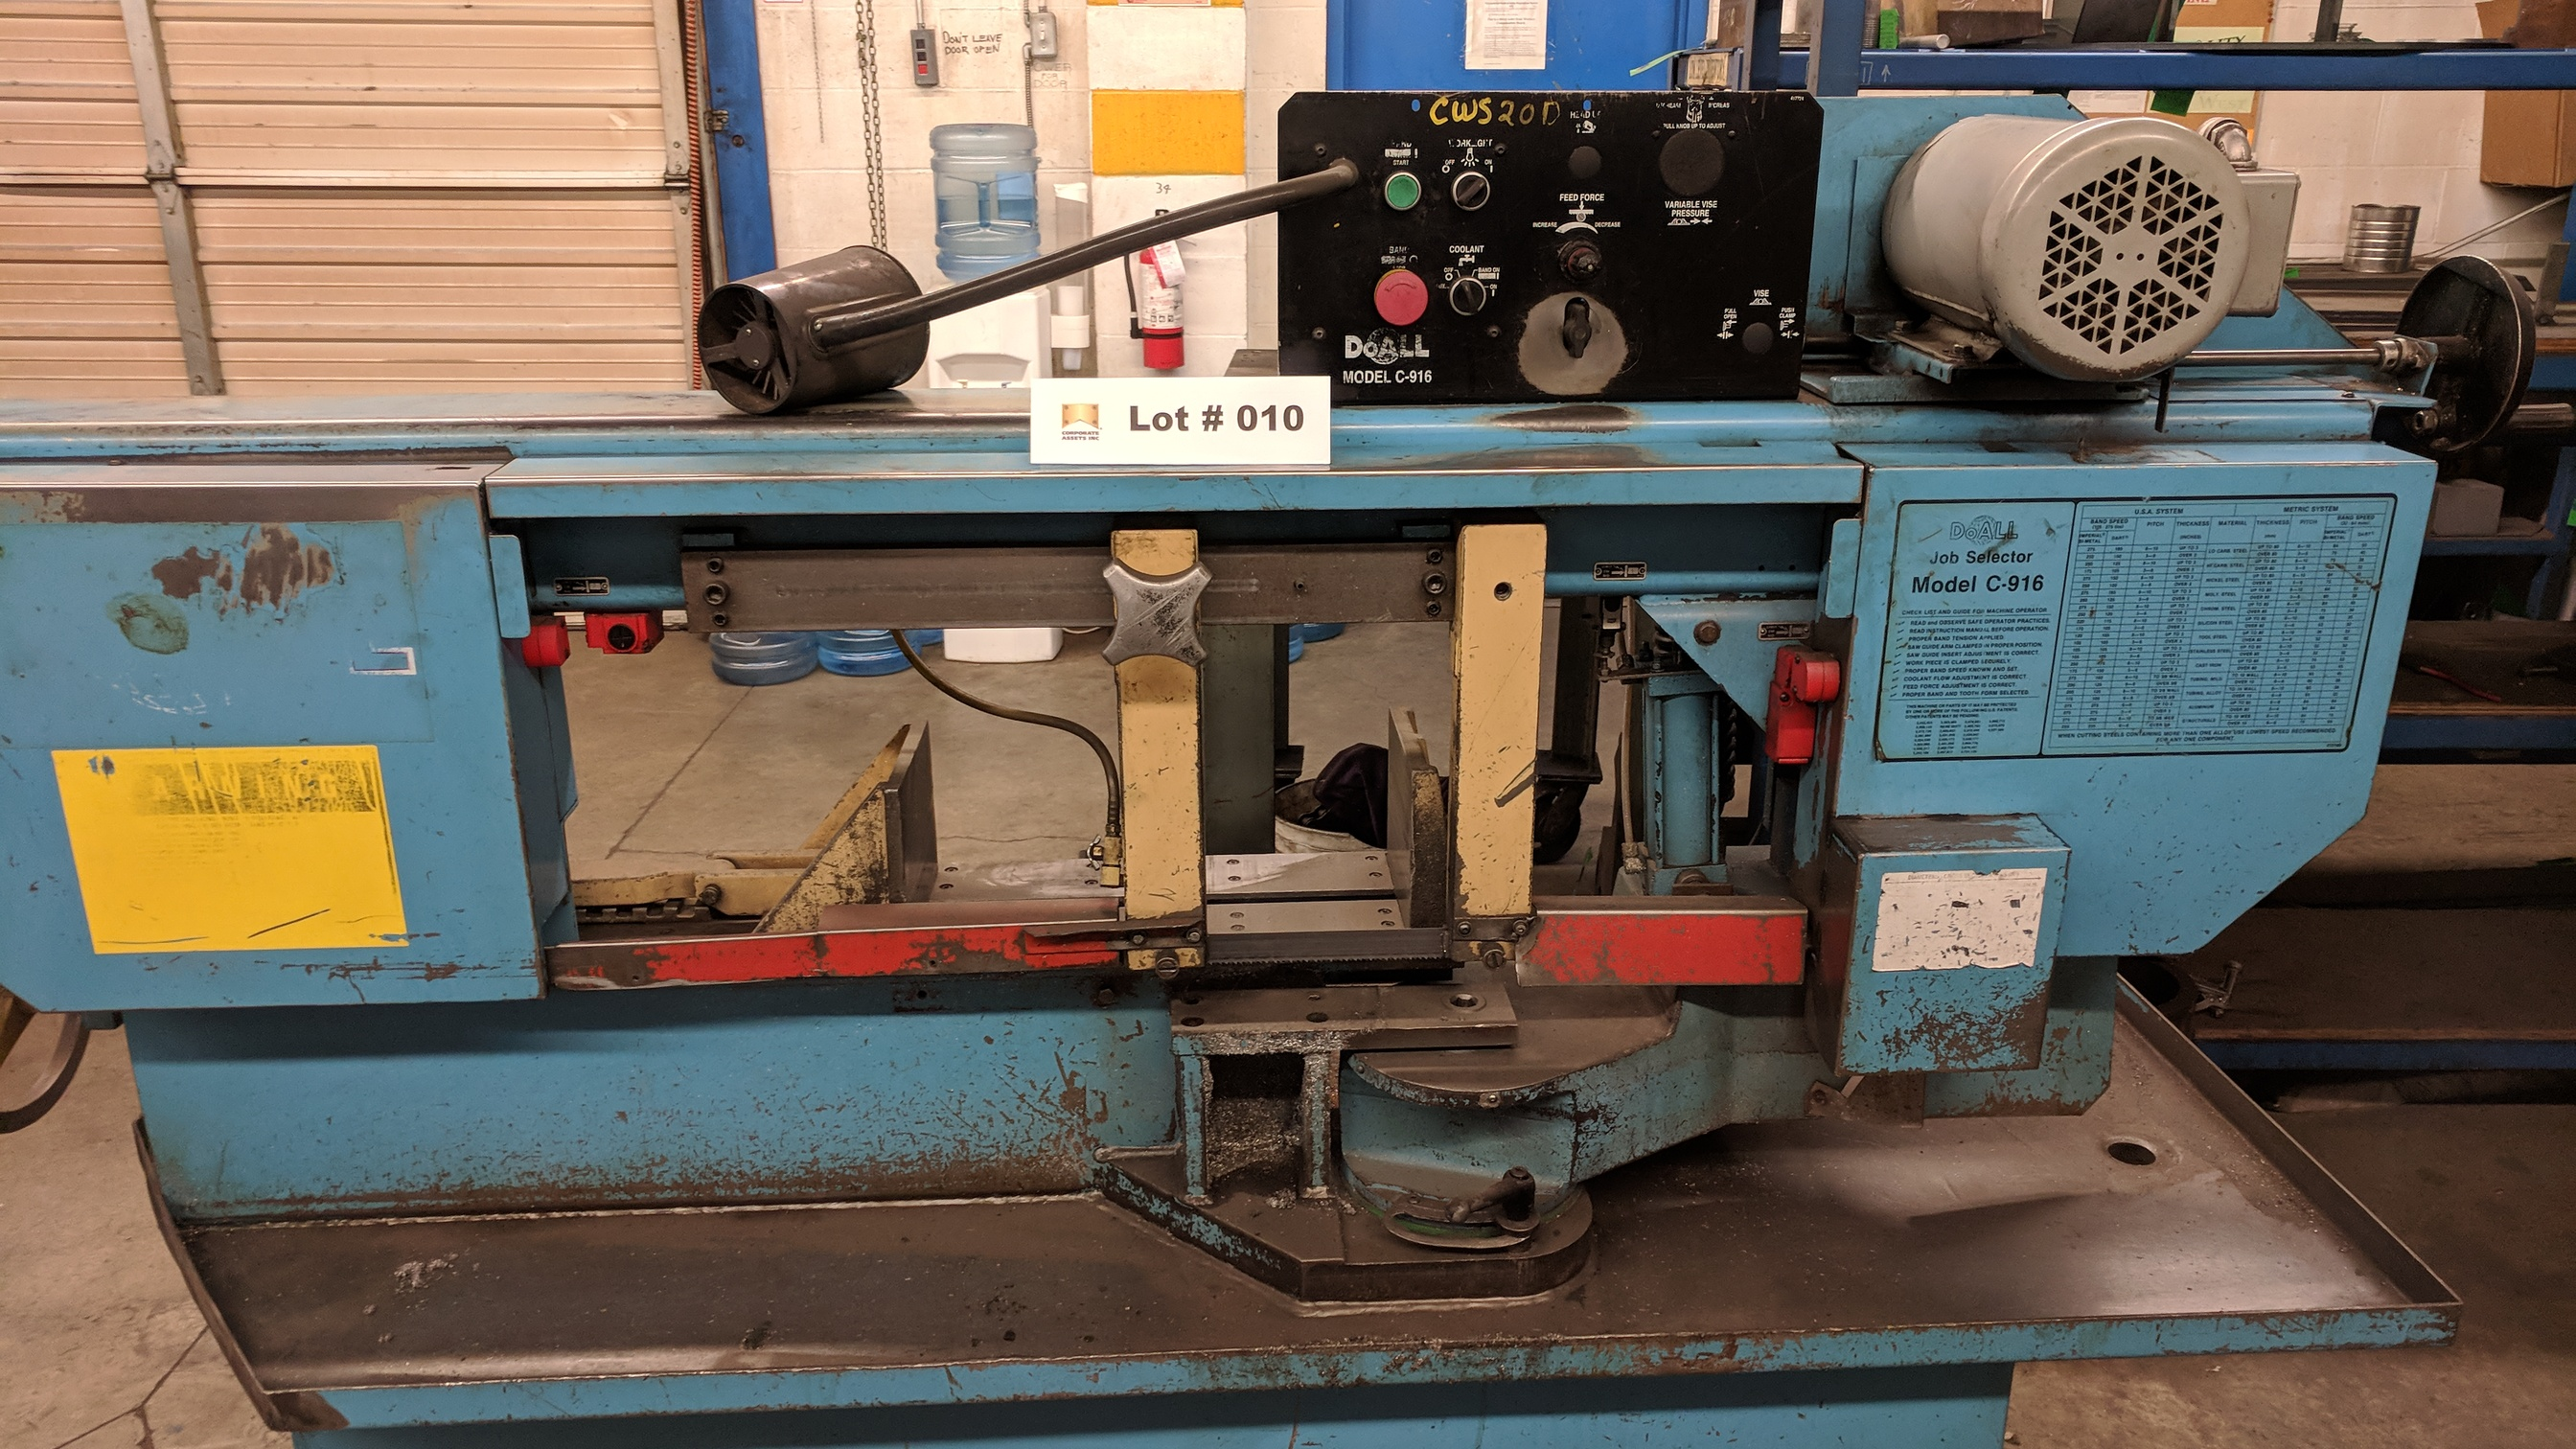 """DOALL C916S 9""""X16"""" METAL CUTTING HORIZONTAL BAND SAW WITH 1"""" X .035"""" X 158"""" BLADE, MITER CAPABILITY, - Image 2 of 7"""